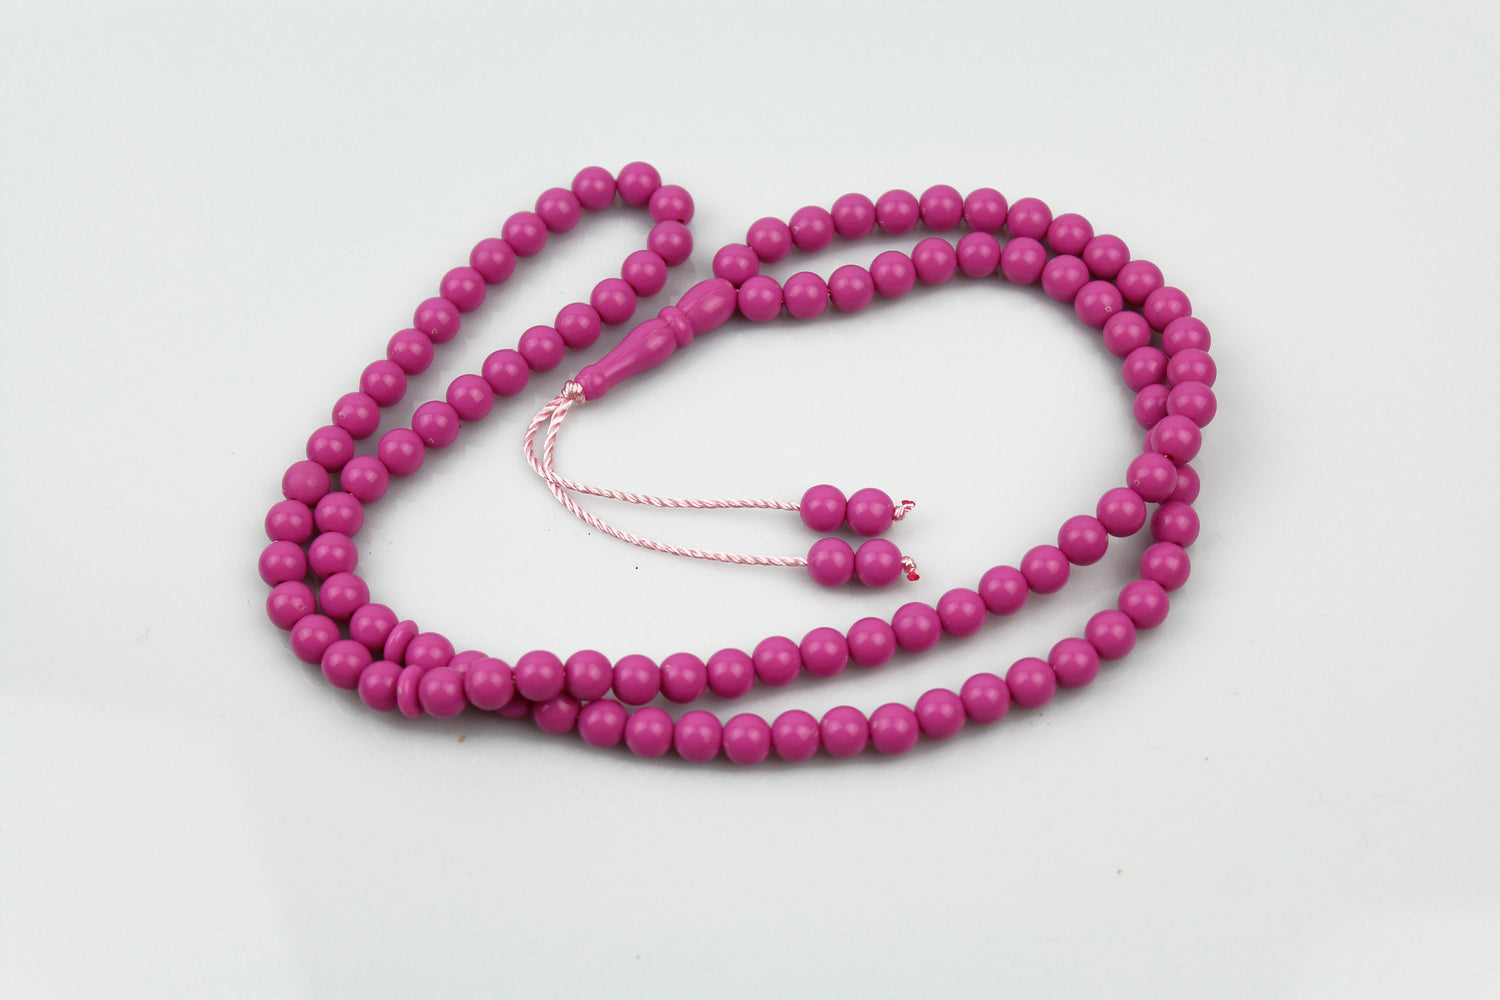 hot pink beaded tasbeeh